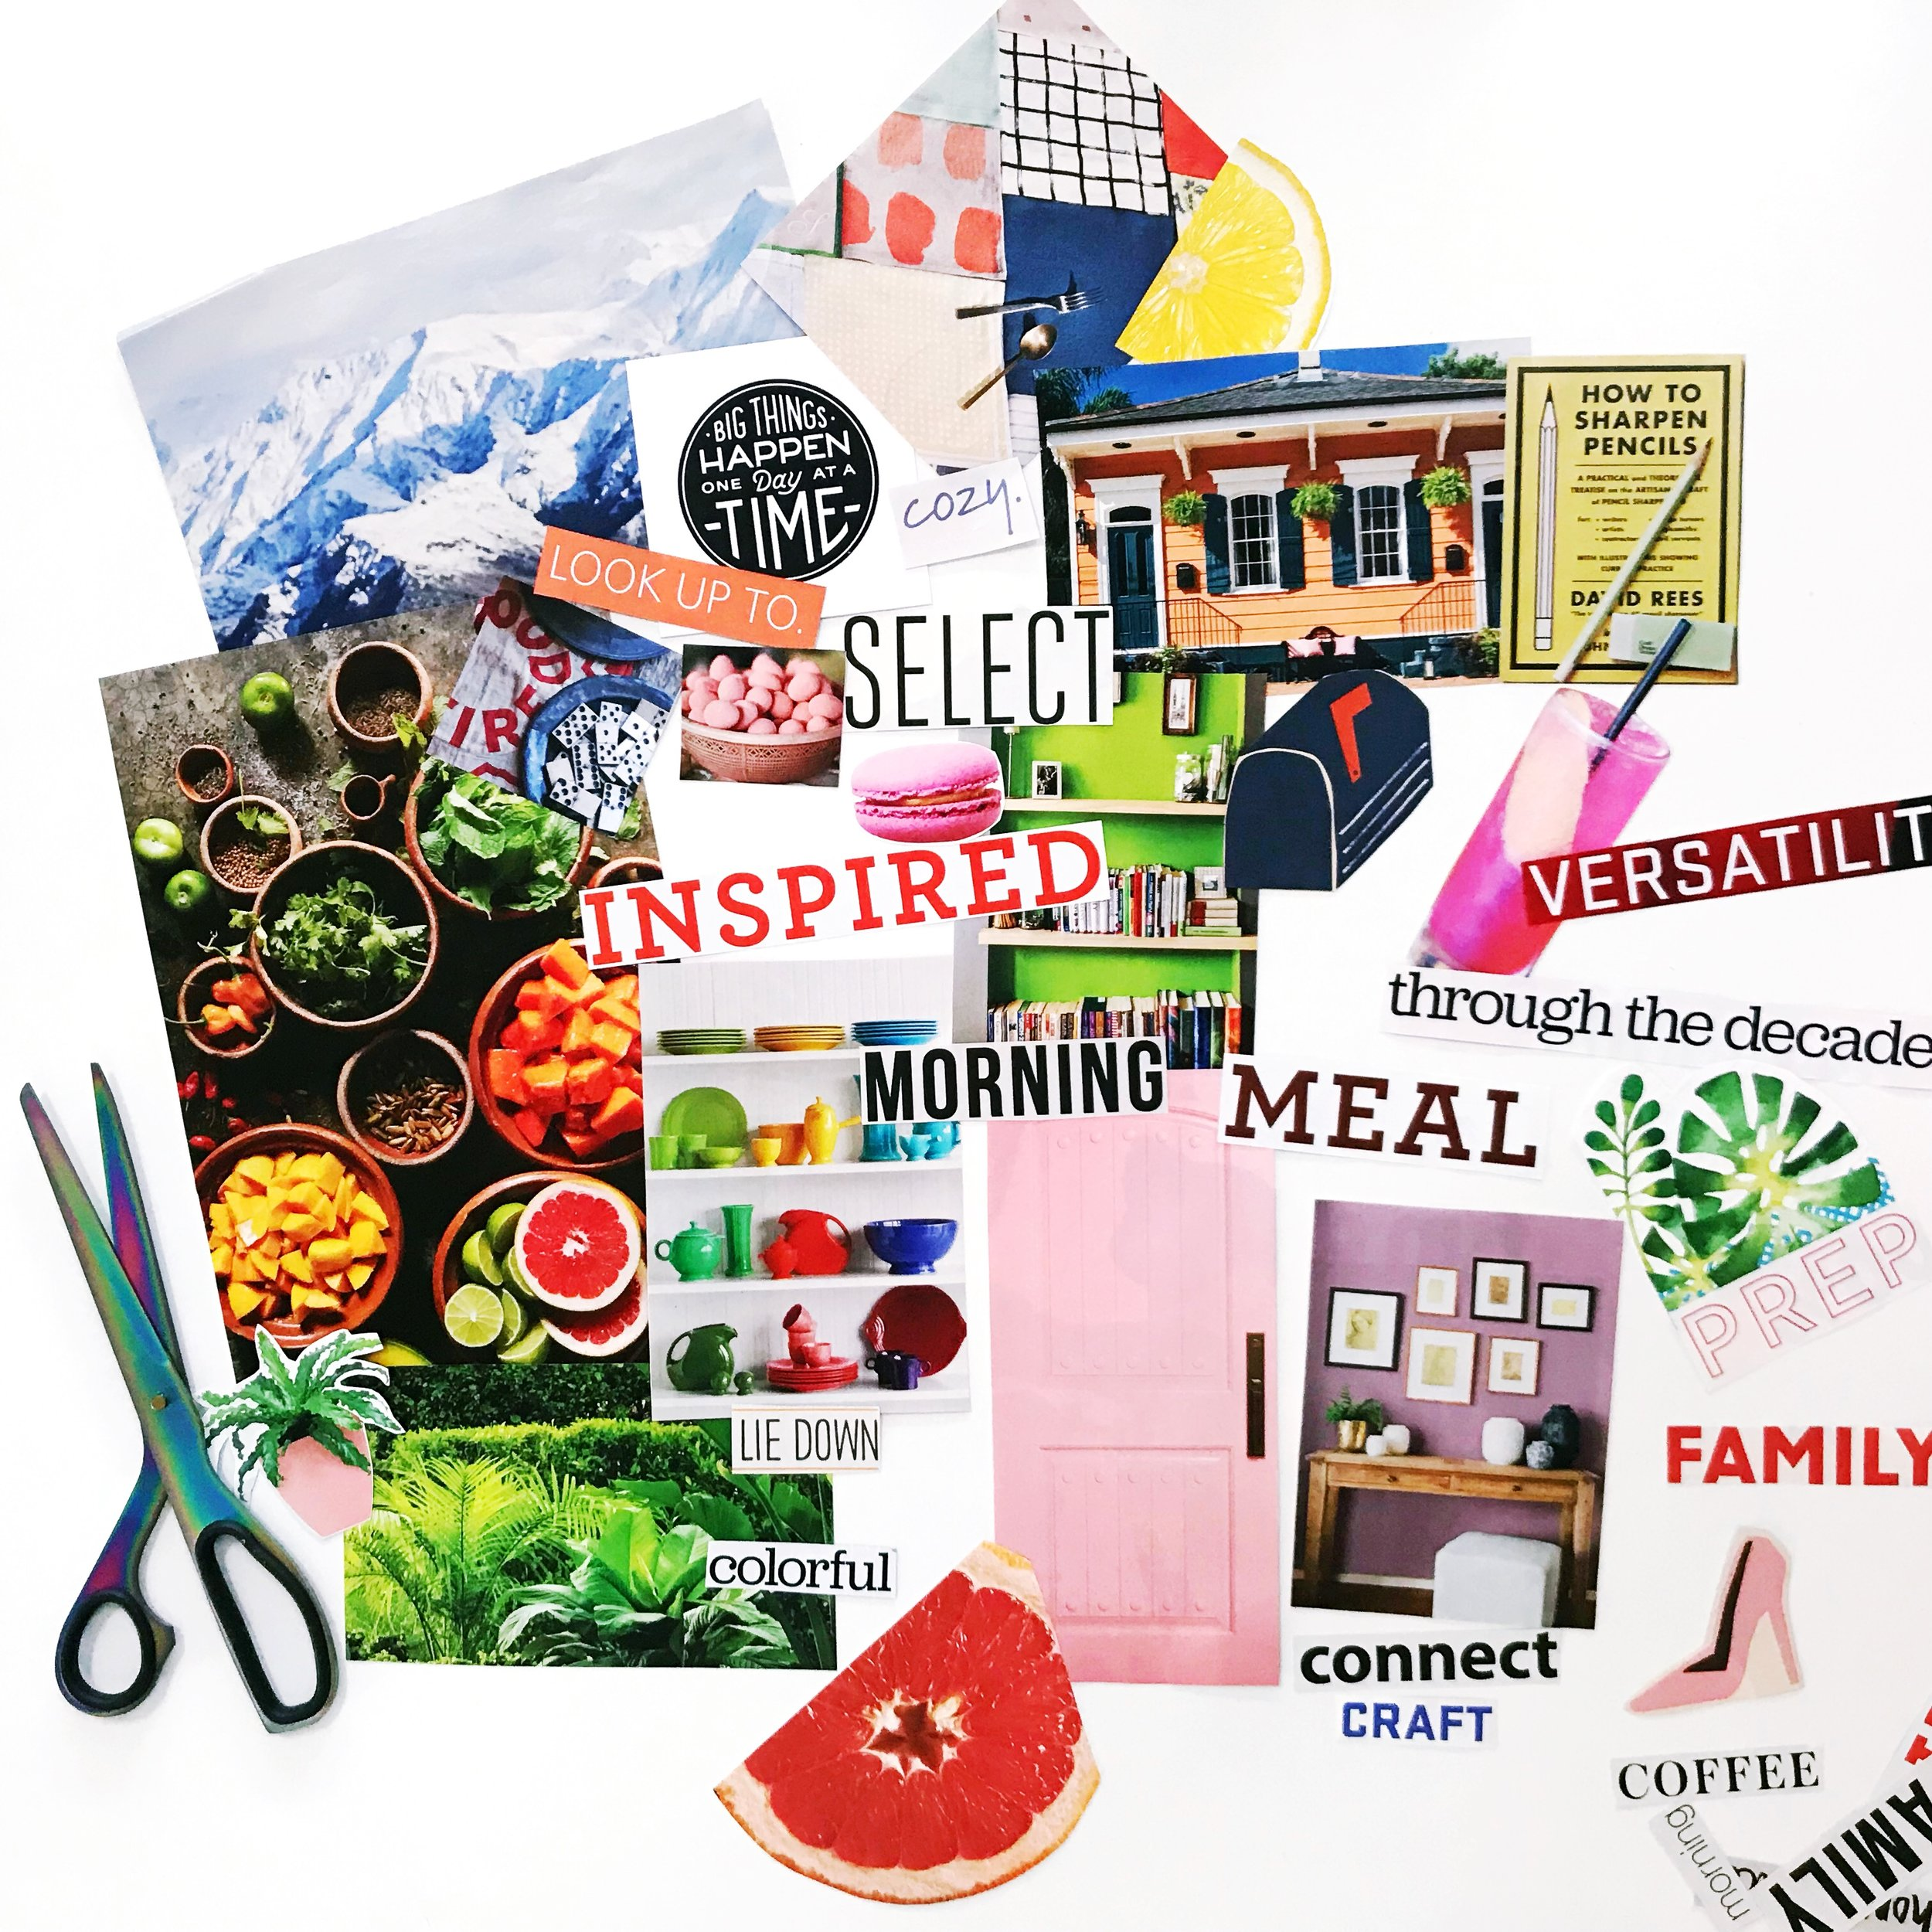 papercraftpantry-austin-community-visionboard-goalsetting.jpg